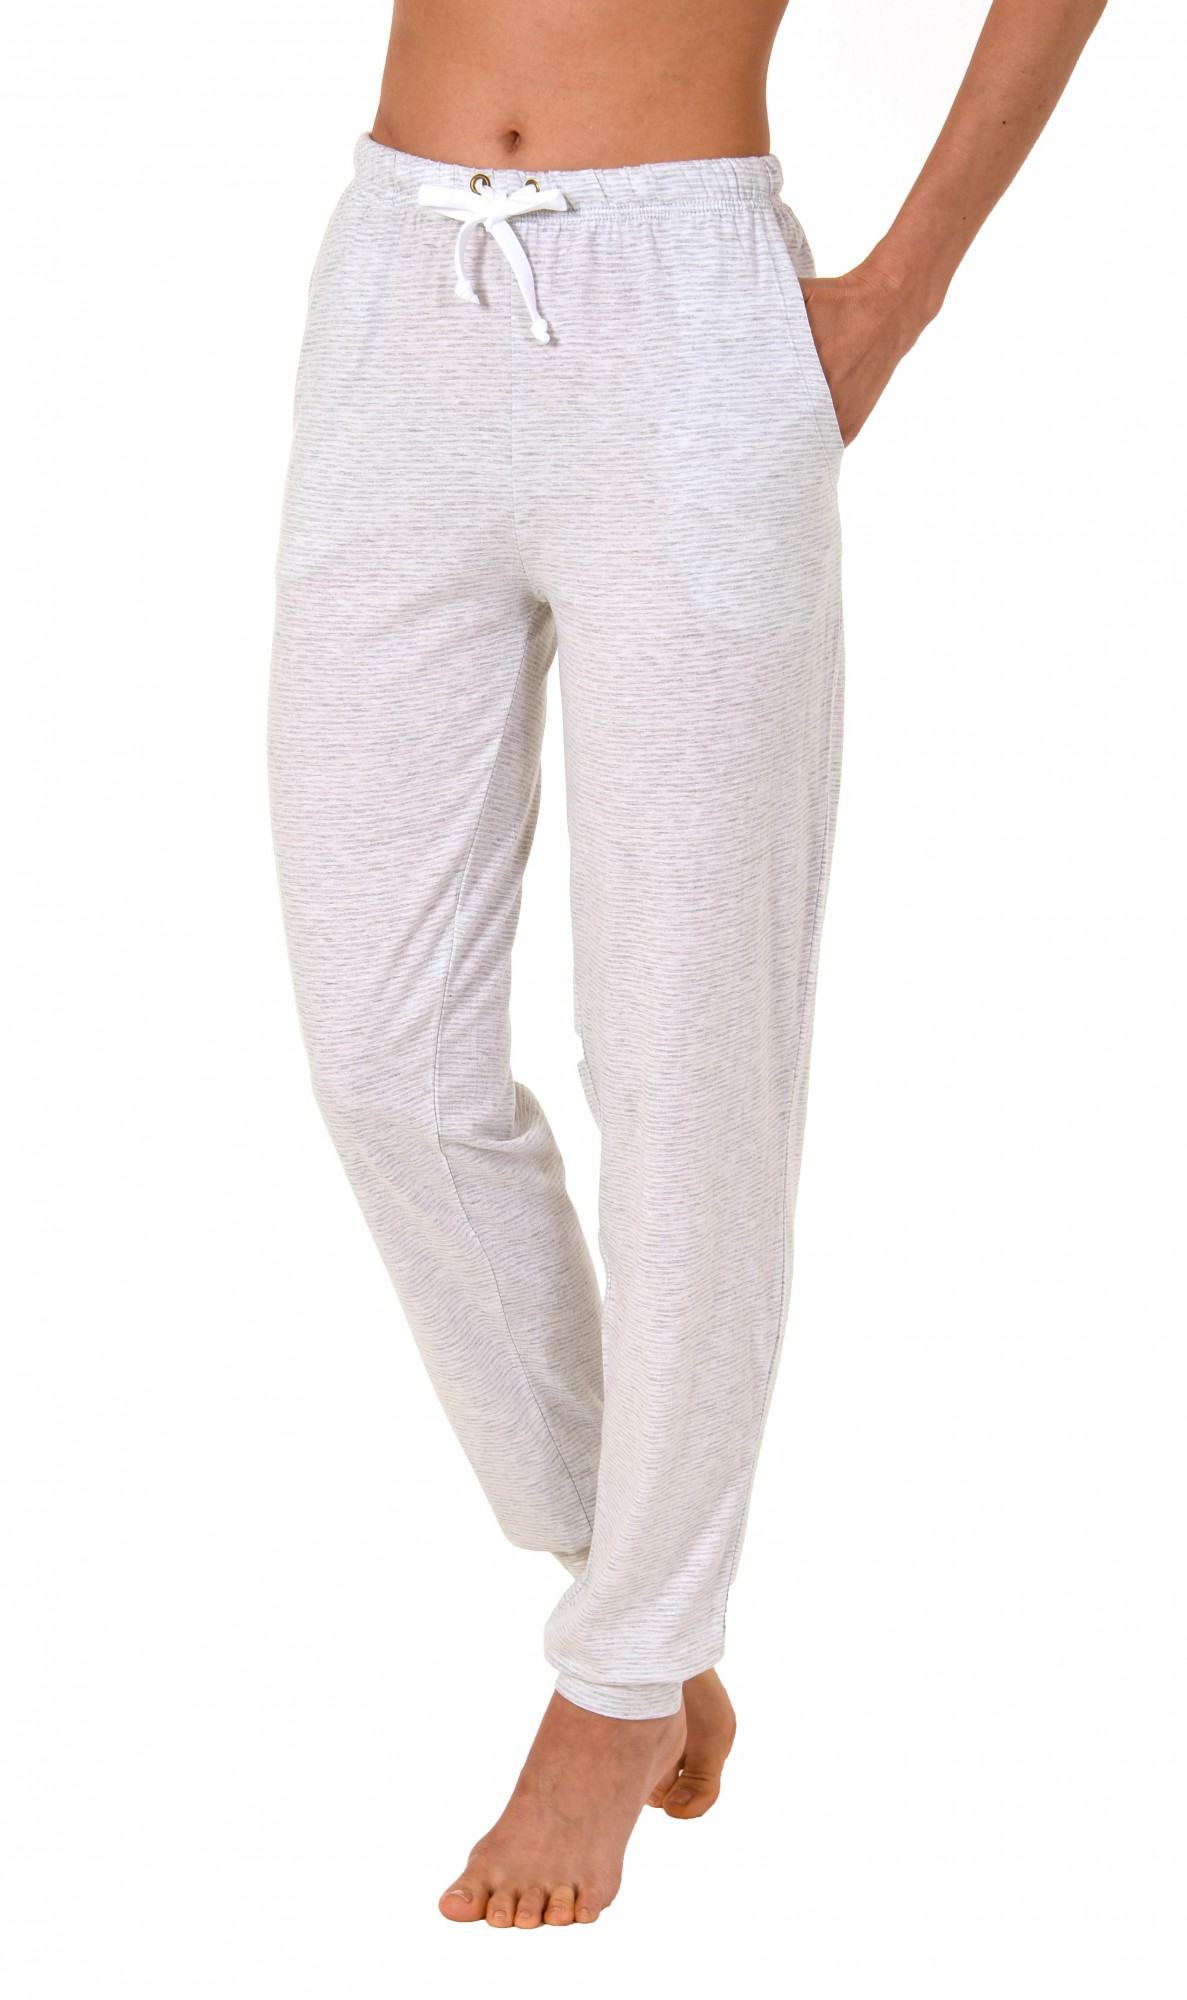 Damen Pyjama Hose lang- Mix & Match – gestreift- ideal zum kombinieren  222 90 903